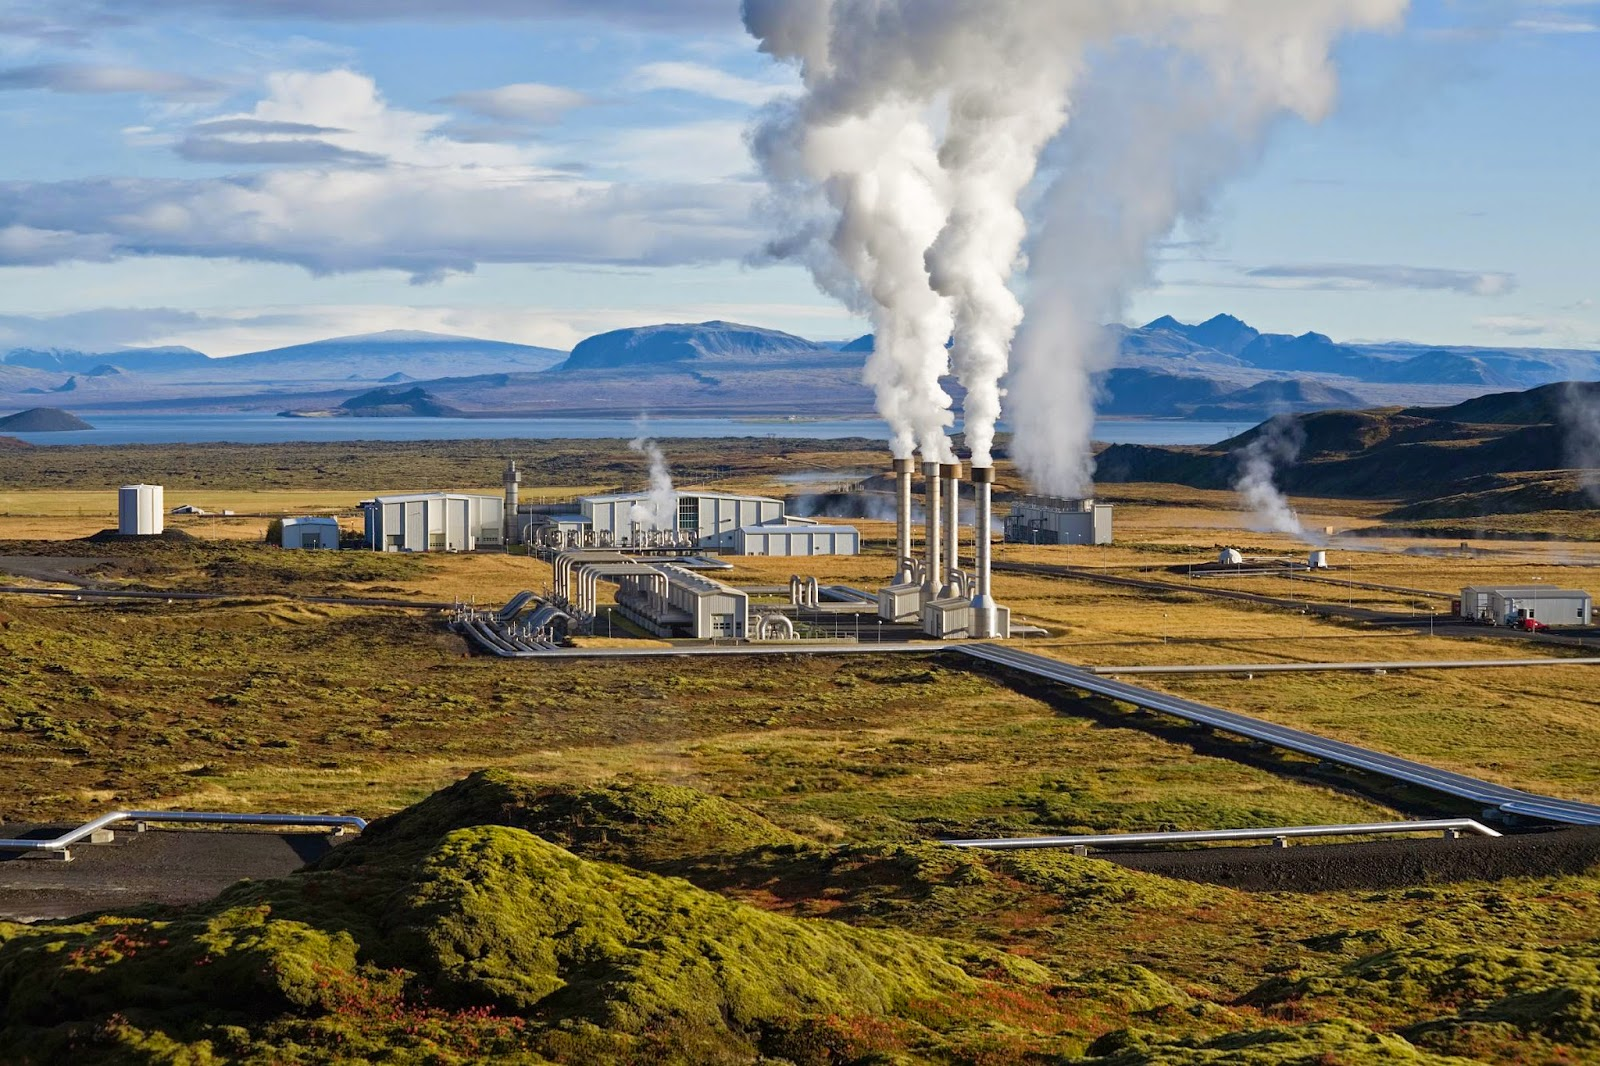 geothermal energy in action